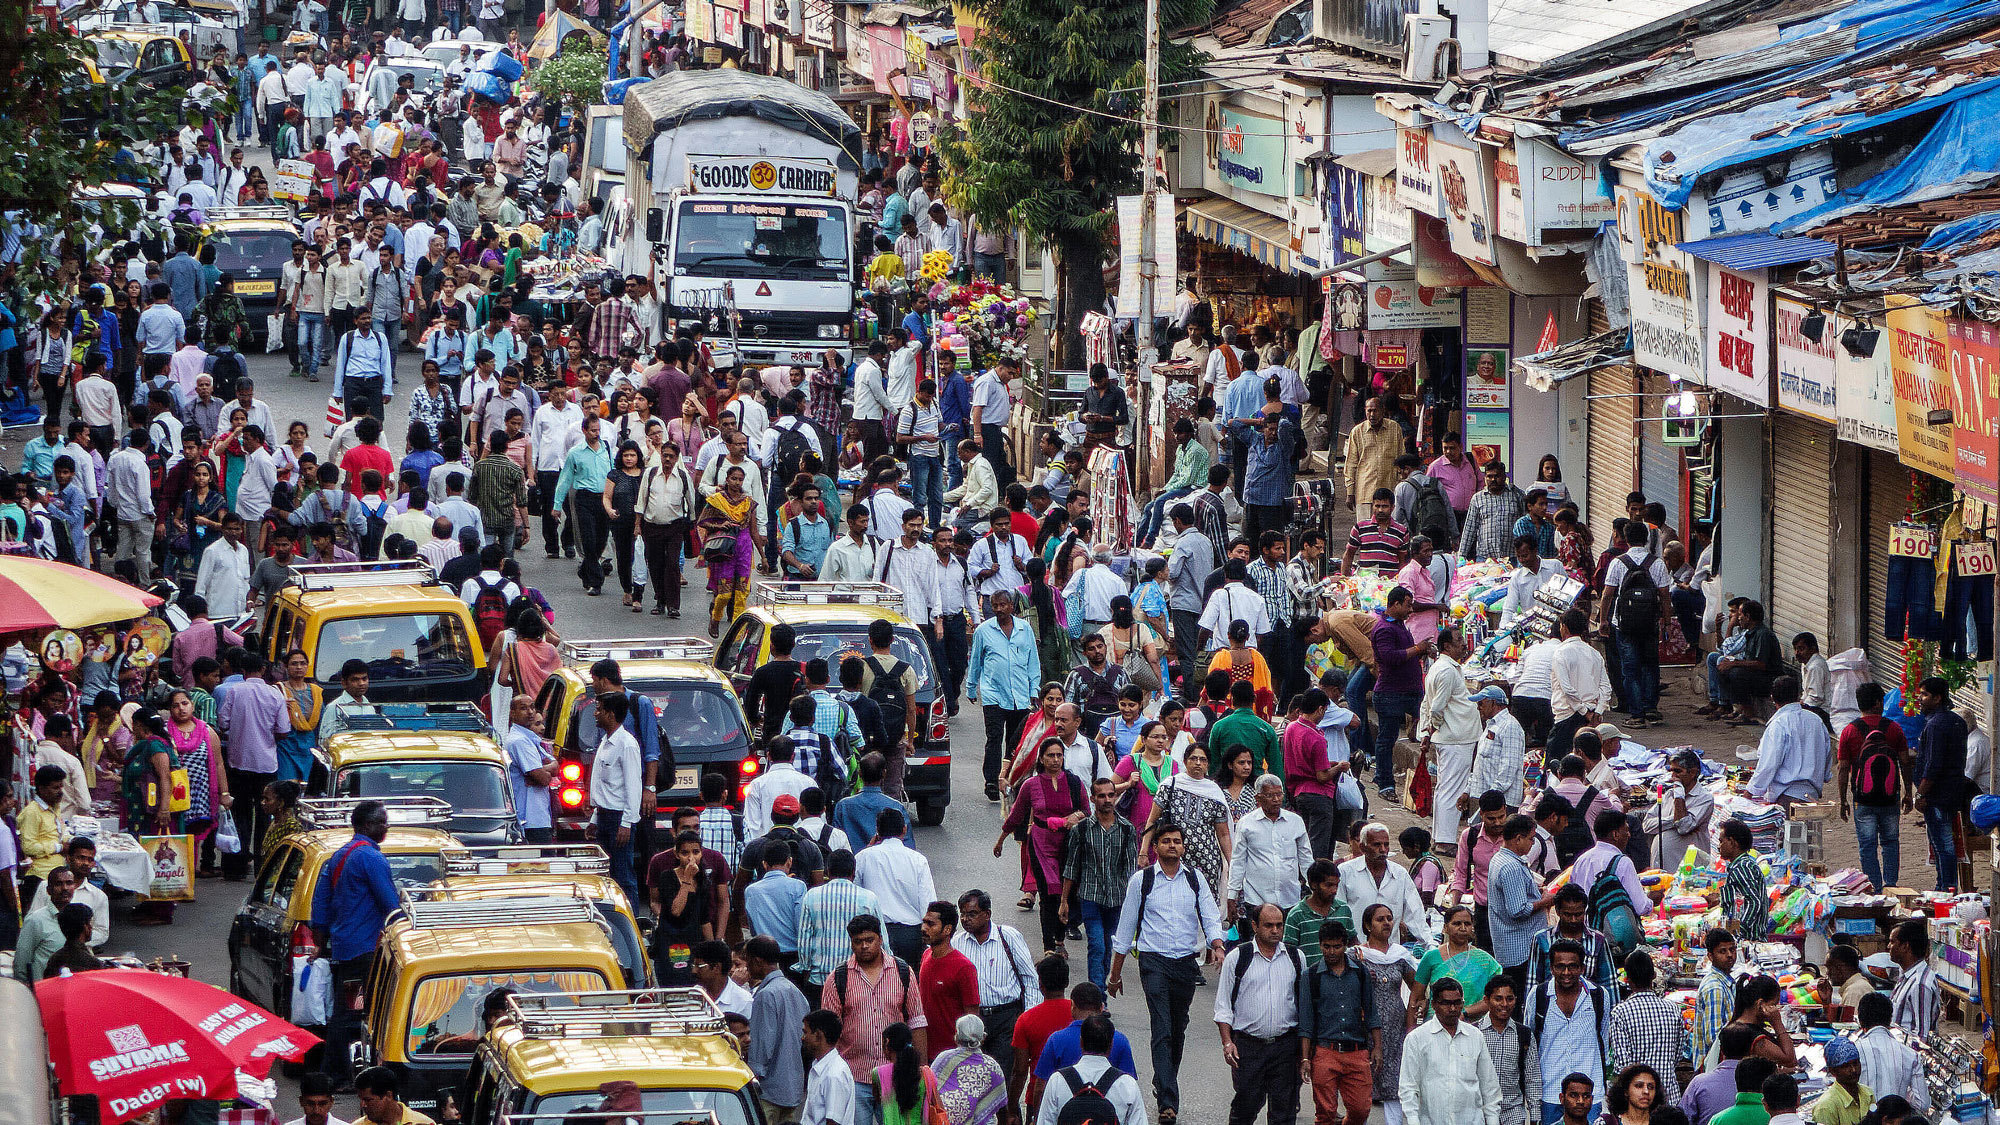 India Population rises, Aamir Khan to blame says MP